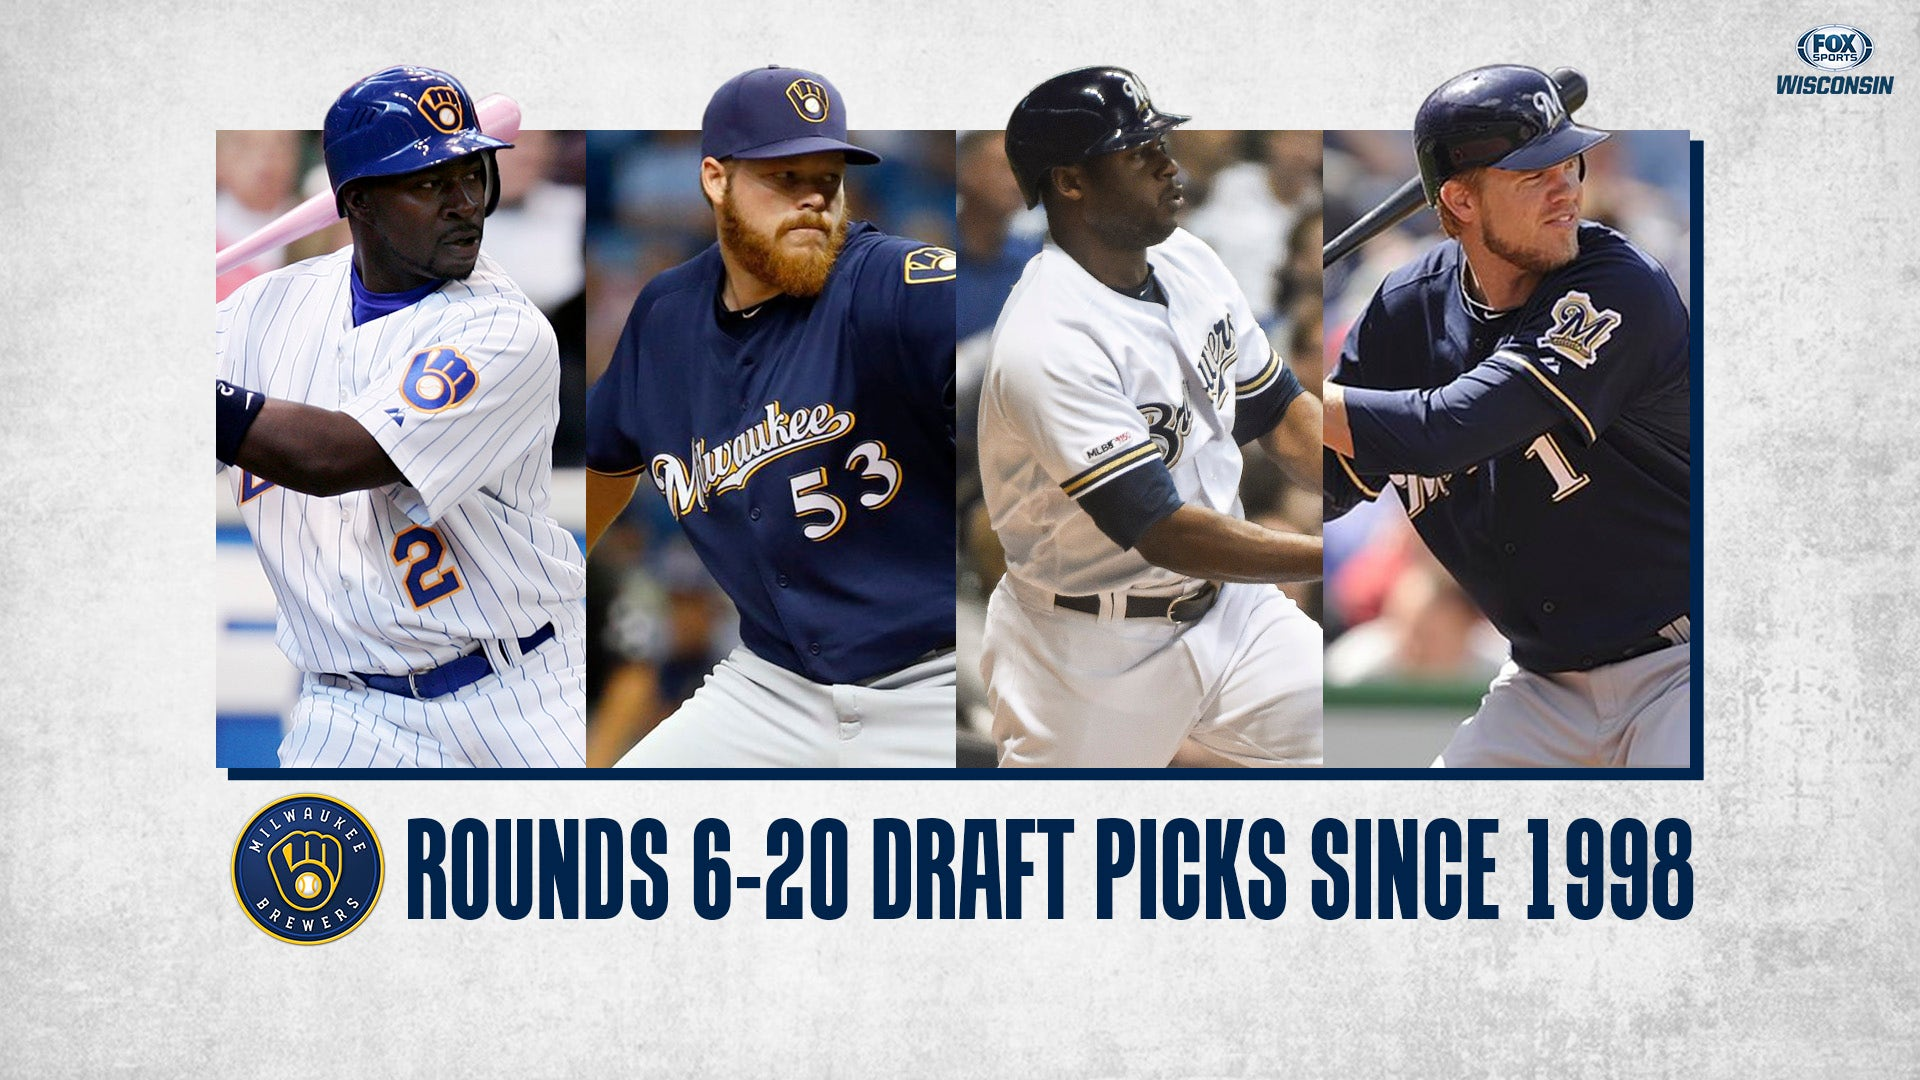 Brewers Mlb Draft Glance Since 1998 Rounds 6 20 Fox Sports